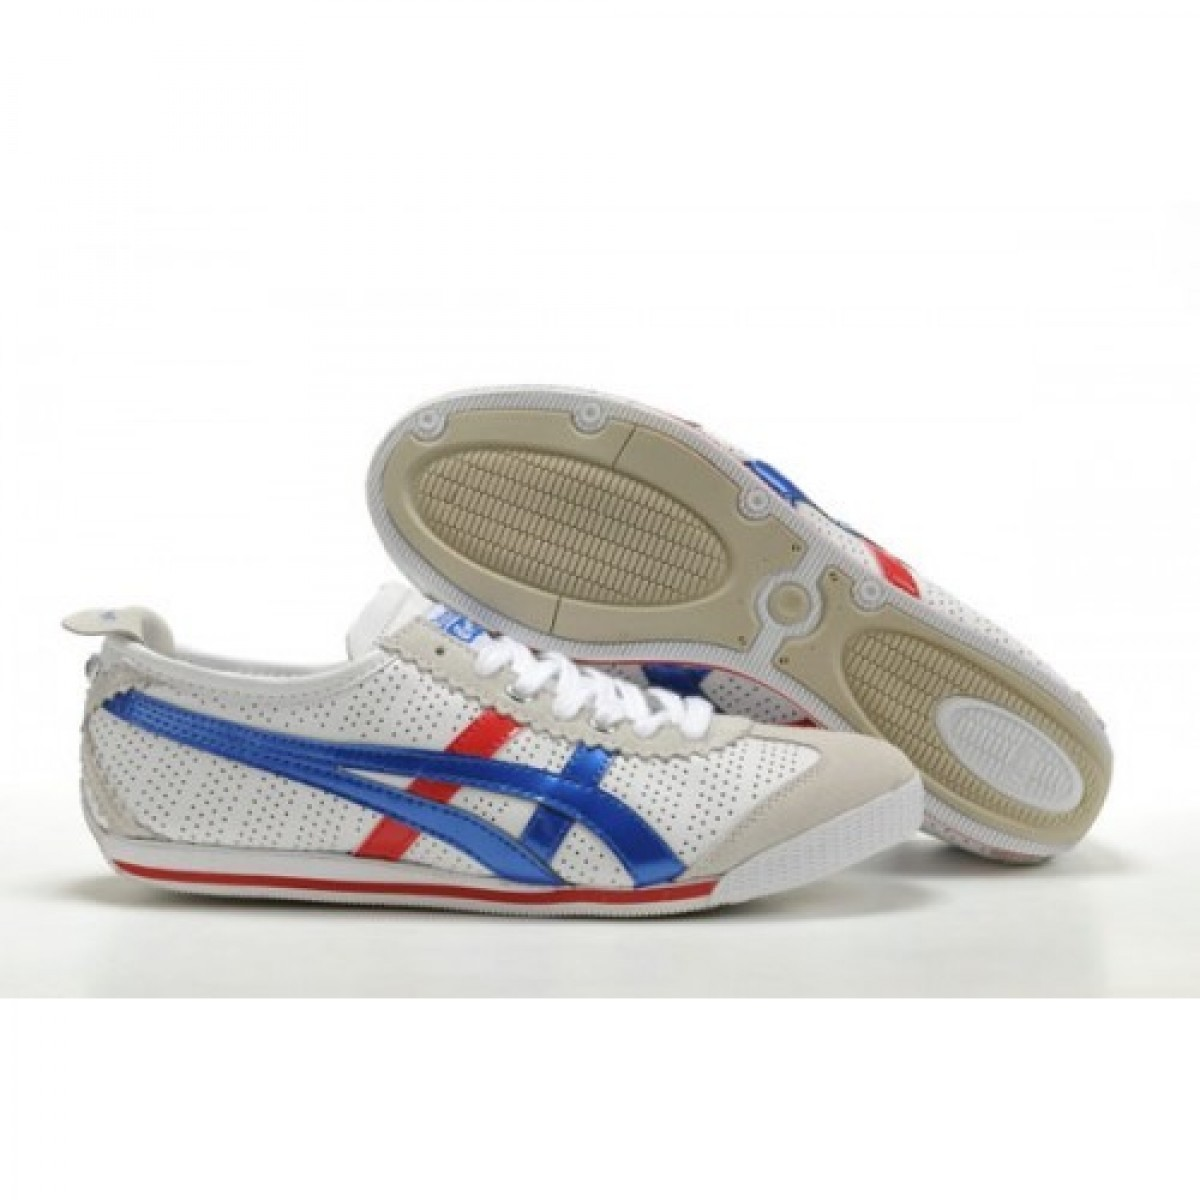 TC2139 Soldes Asics Onitsuka Tiger Mini Cooper Chaussures Bleu Rouge Beige 43362527 Pas Cher